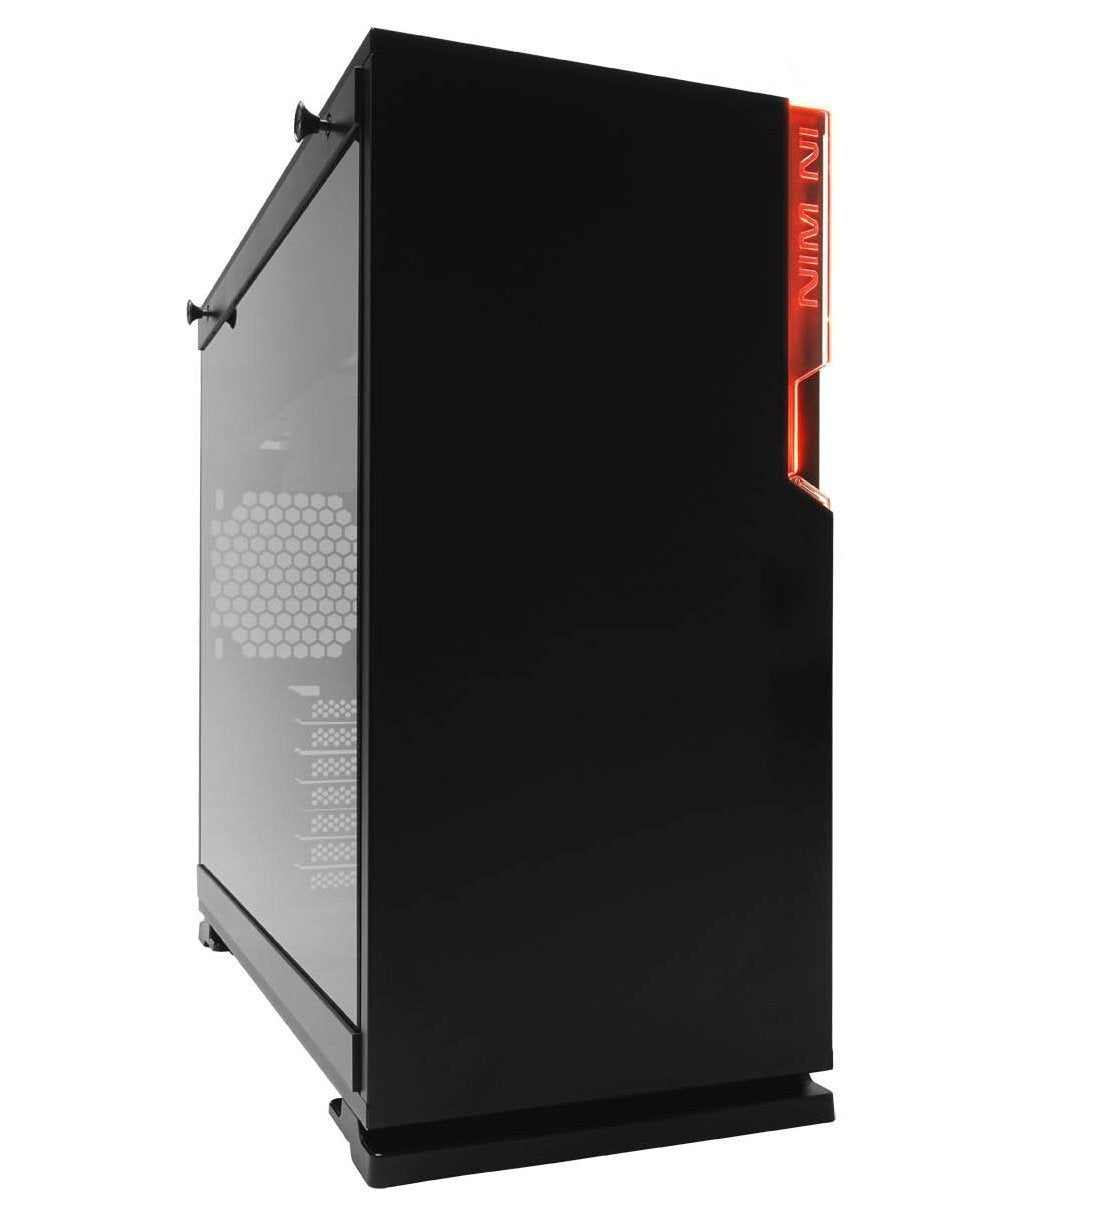 InWin 101 ATX Mid Tower Case - Black